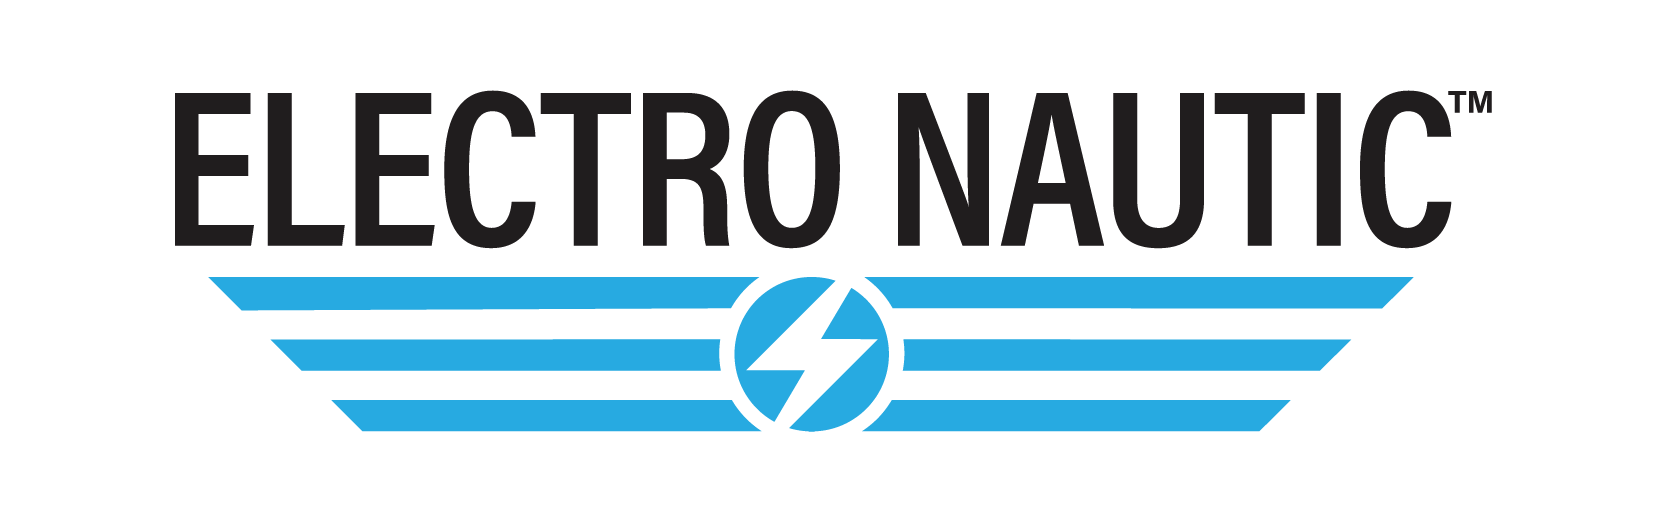 logo_electro_nautic_website_footer.png